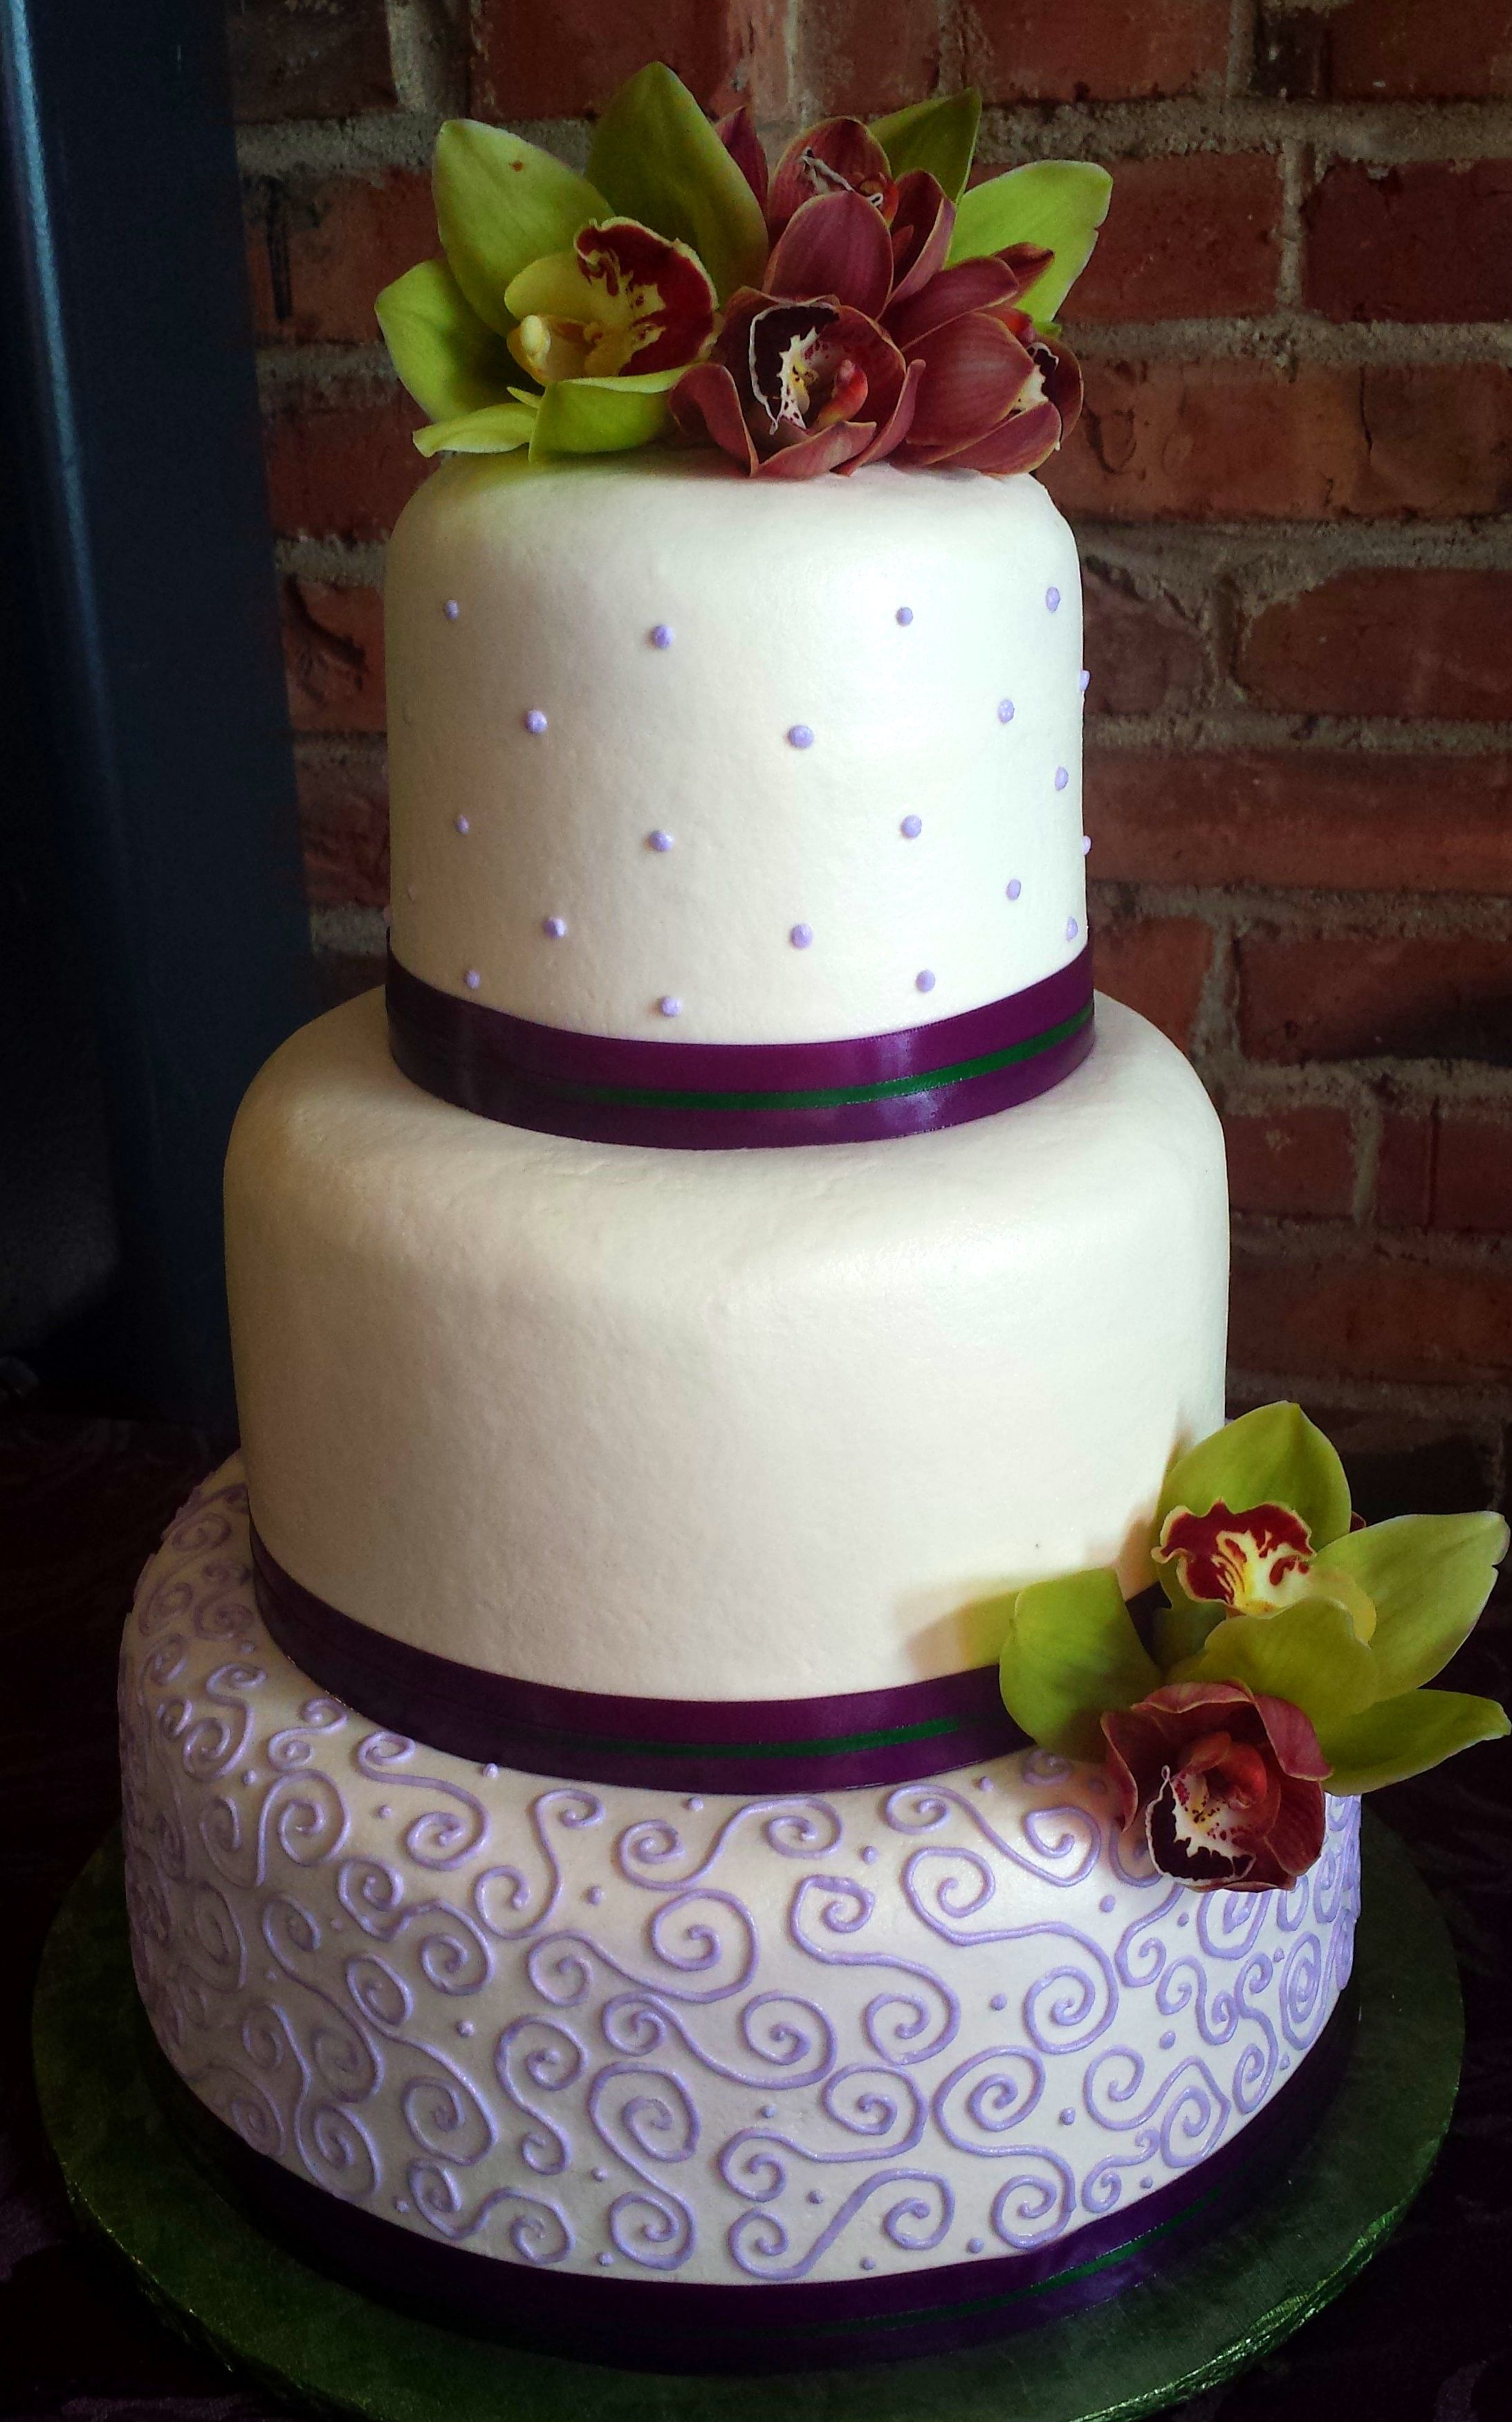 buttercream wedding cake made to look like fondant with purple